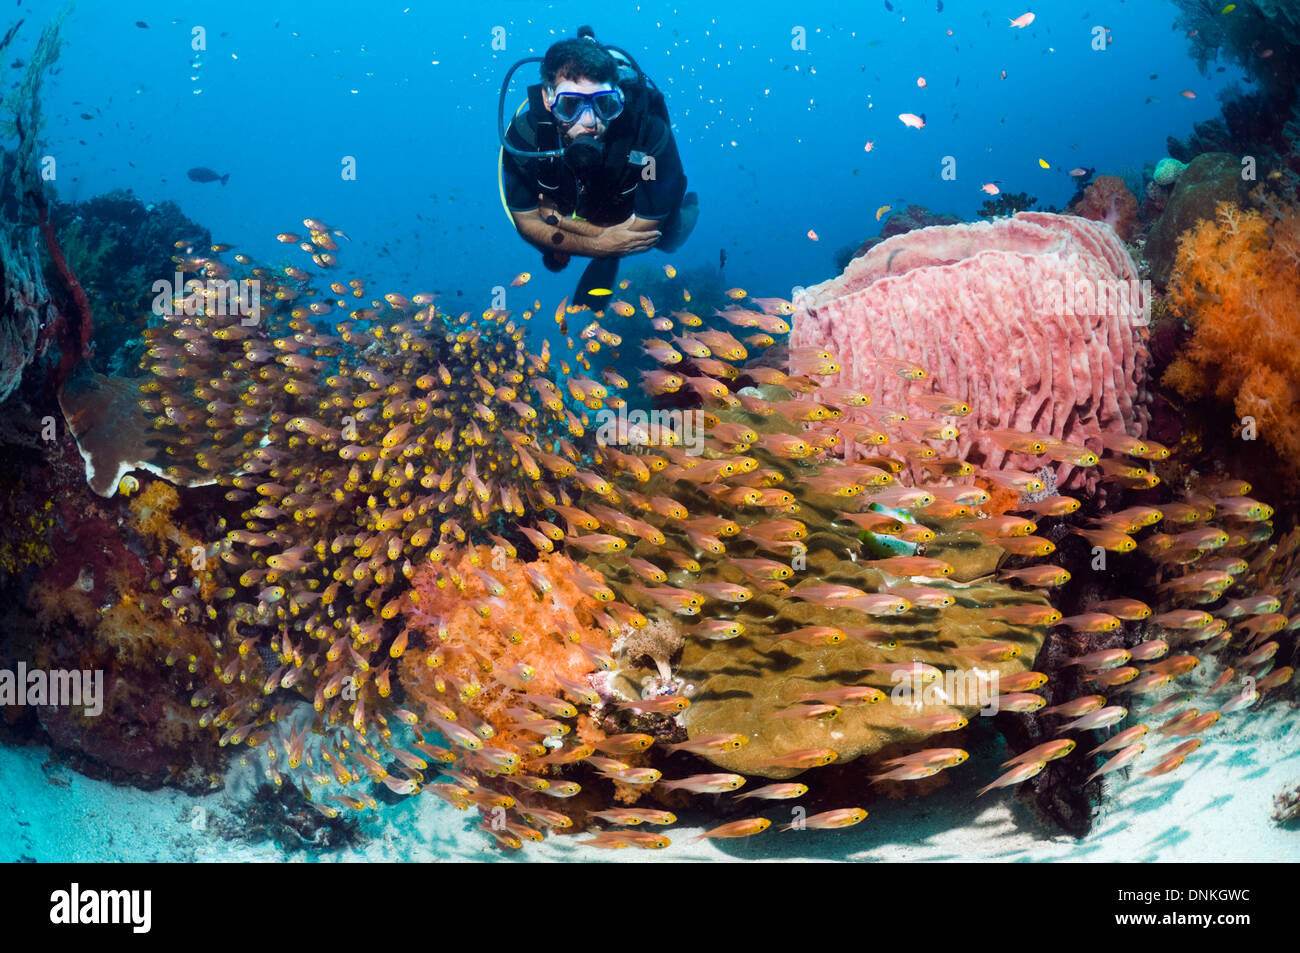 Male scuba diver watching a school of Pygmy sweepers (Parapriacanthus ransonetti) on coral reef. Stock Photo